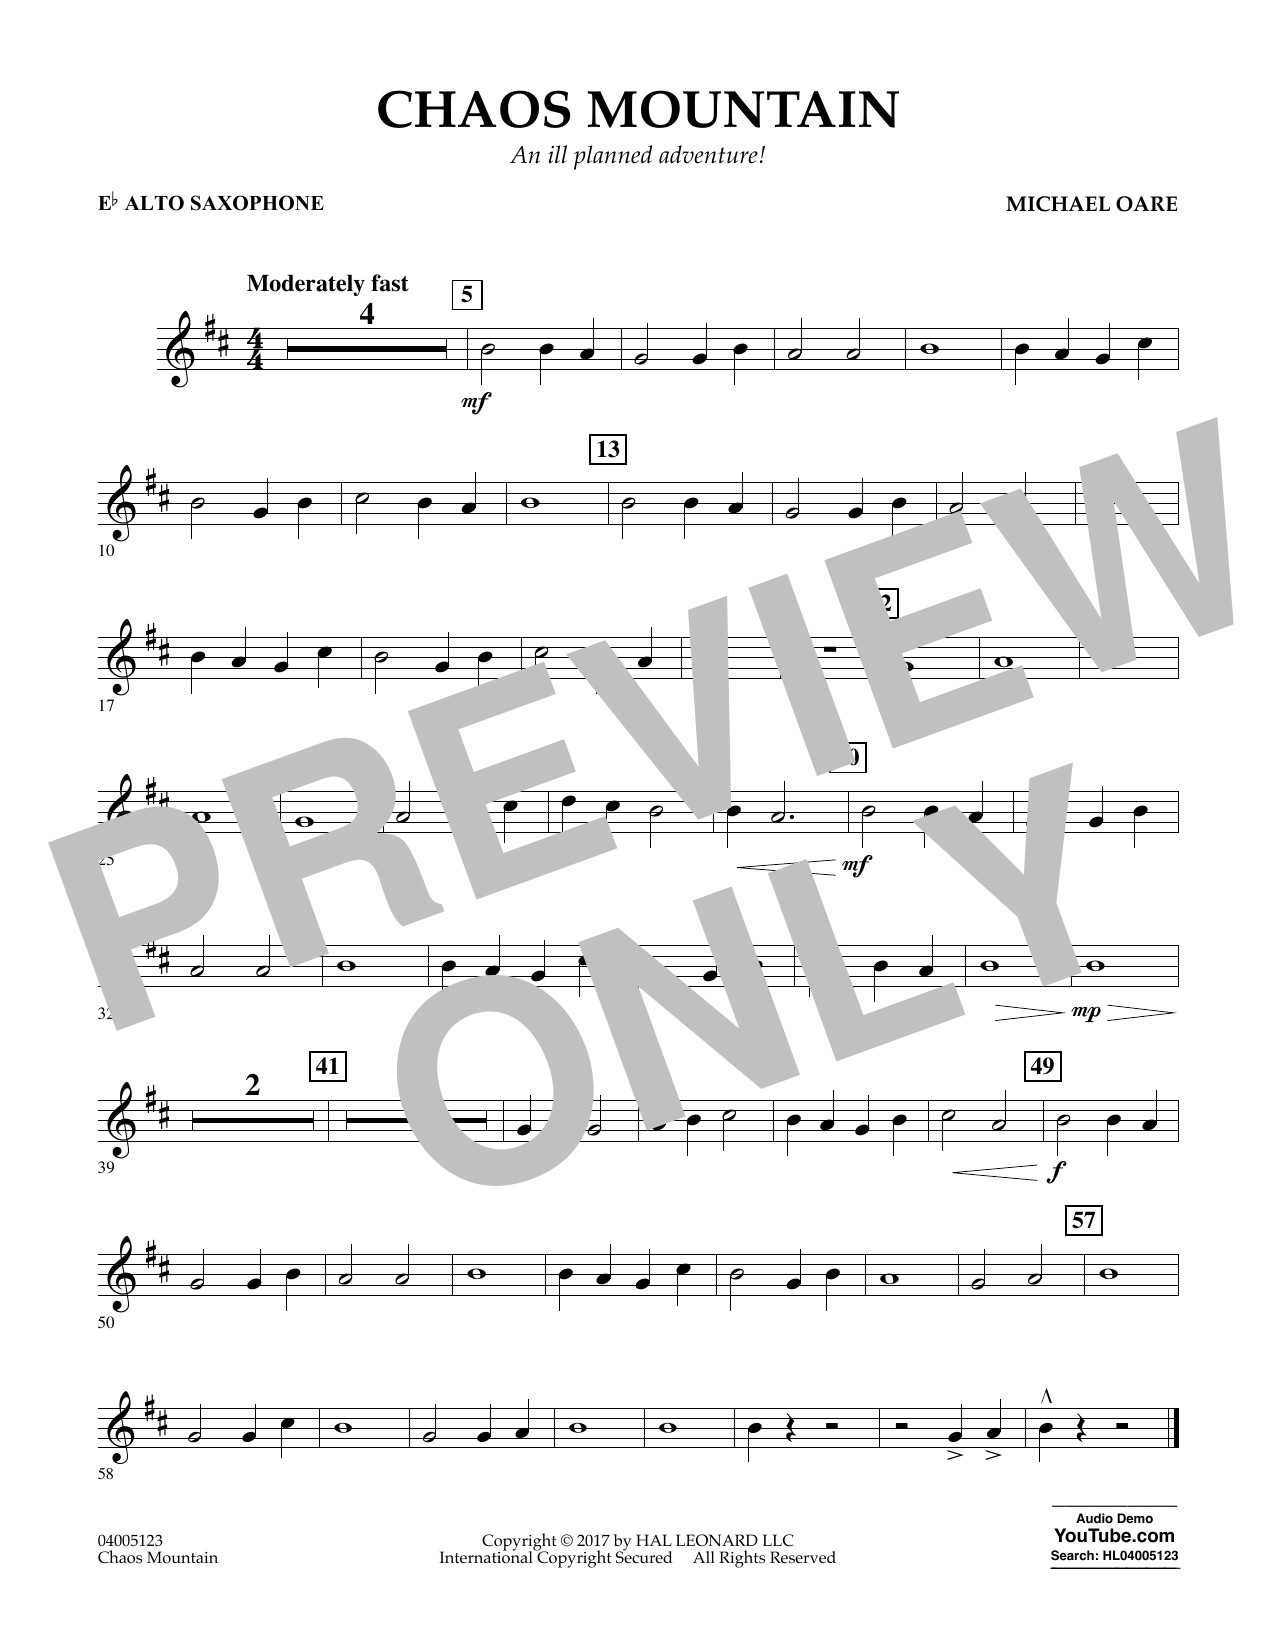 Michael Oare Chaos Mountain - Eb Alto Saxophone sheet music notes and chords. Download Printable PDF.